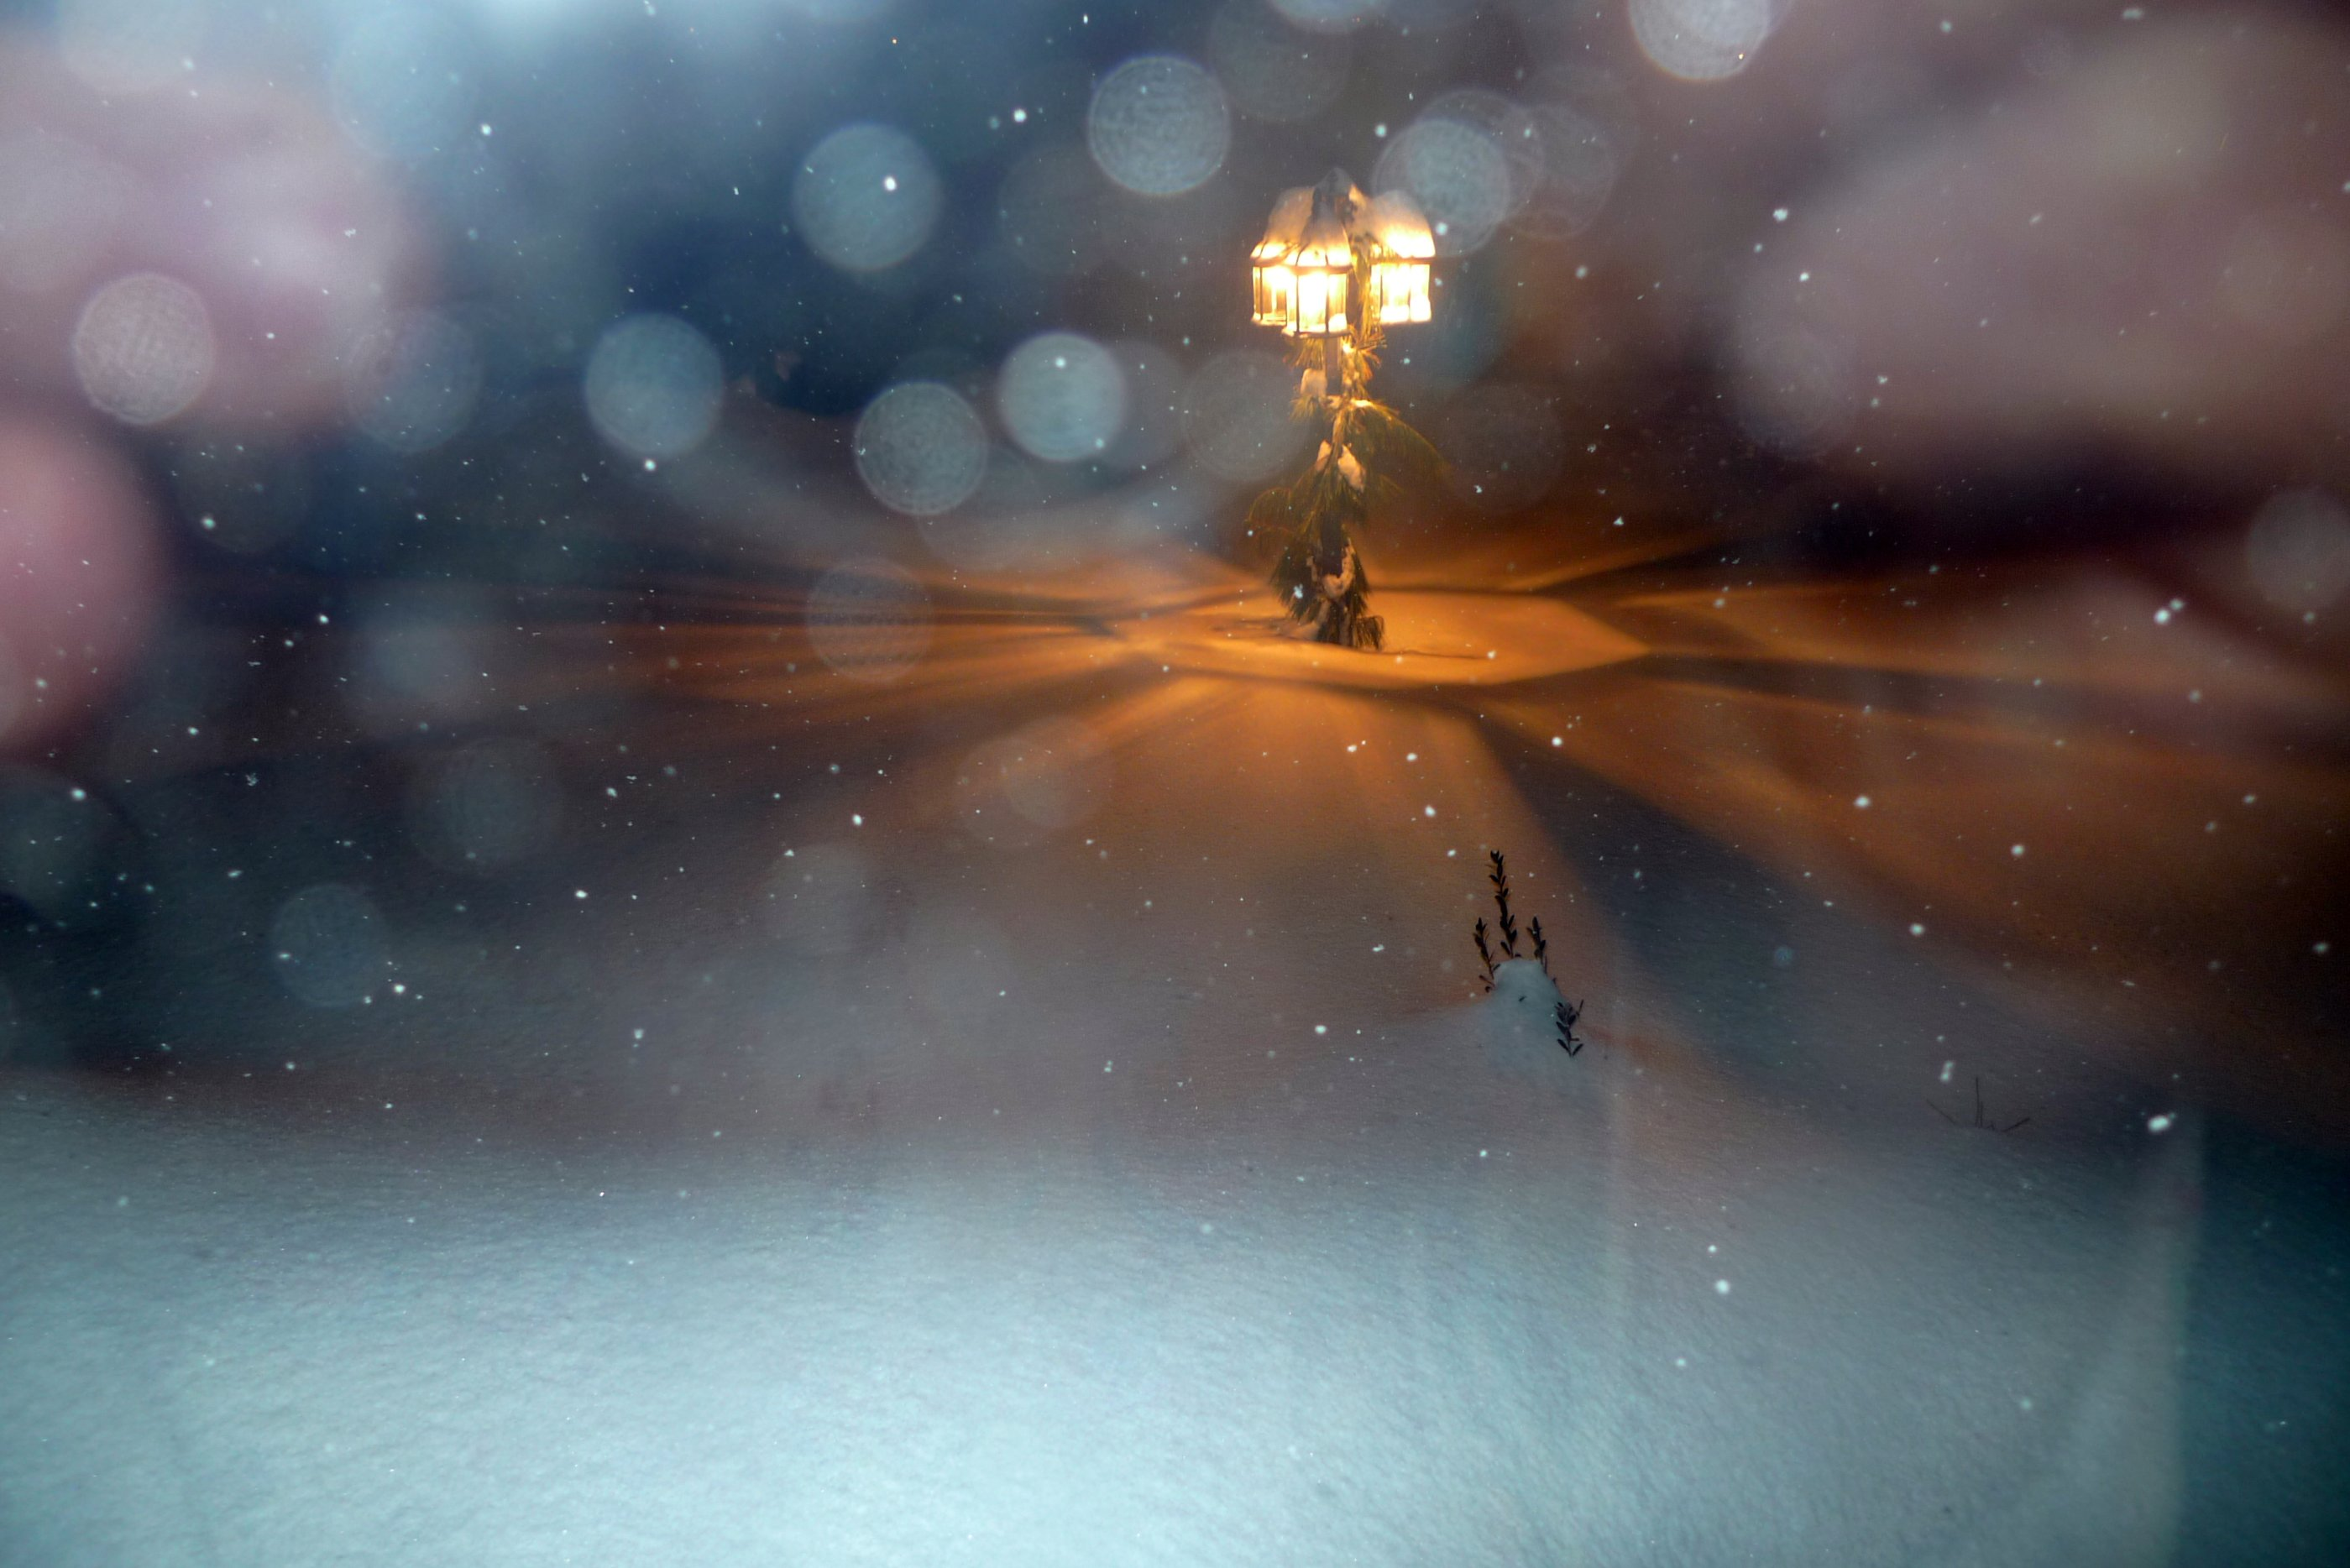 File:Lamppost in Night Snow.jpg - Wikimedia Commons for Lamp Post At Night Snow  150ifm